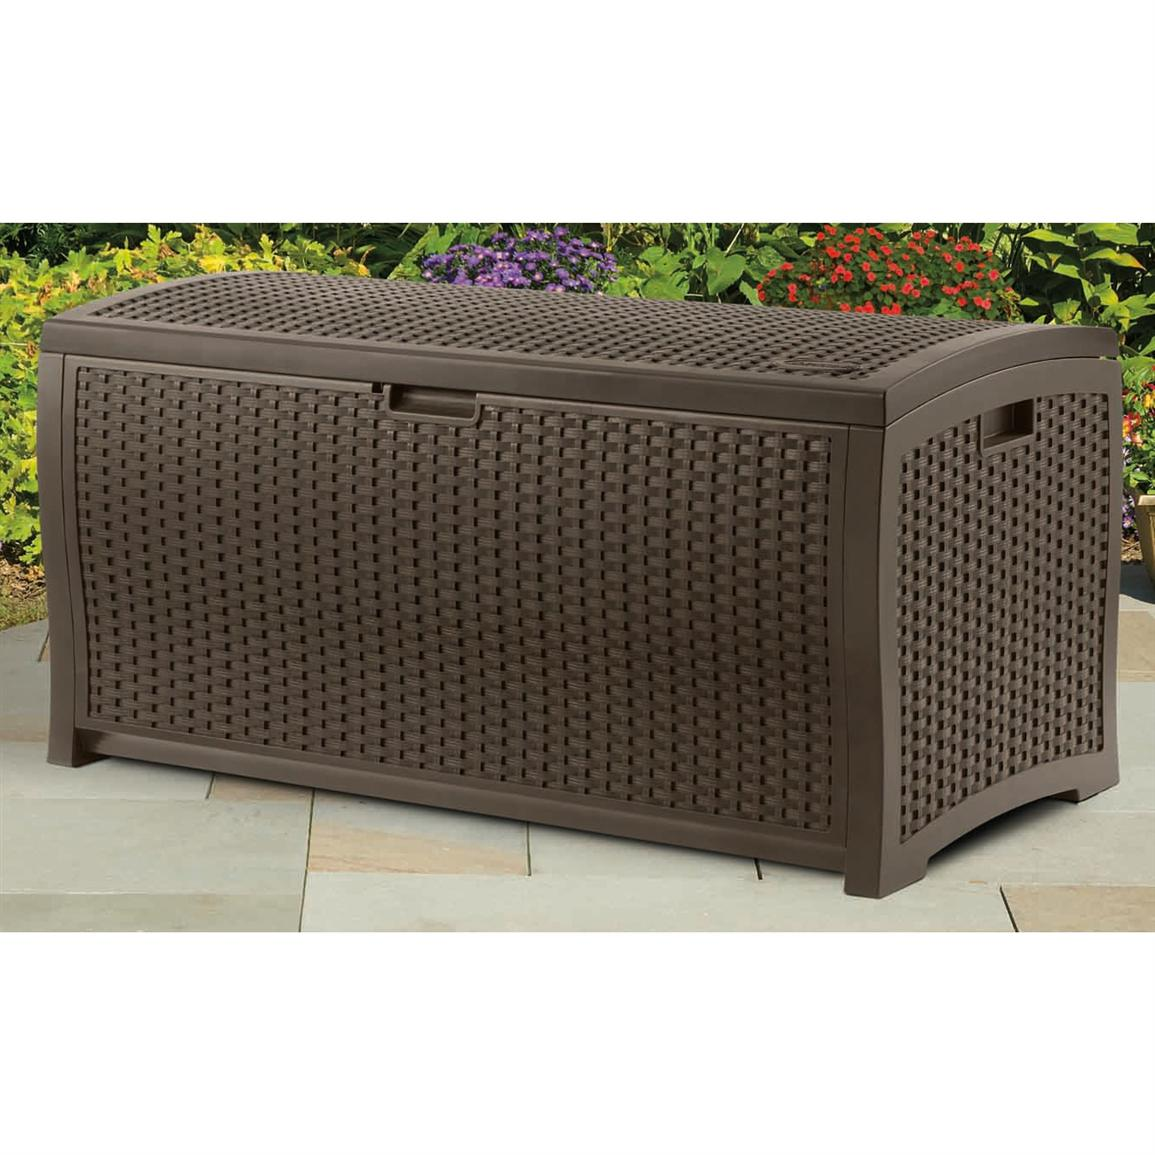 Suncast® Resin Wicker 73 - Gallon Deck Box